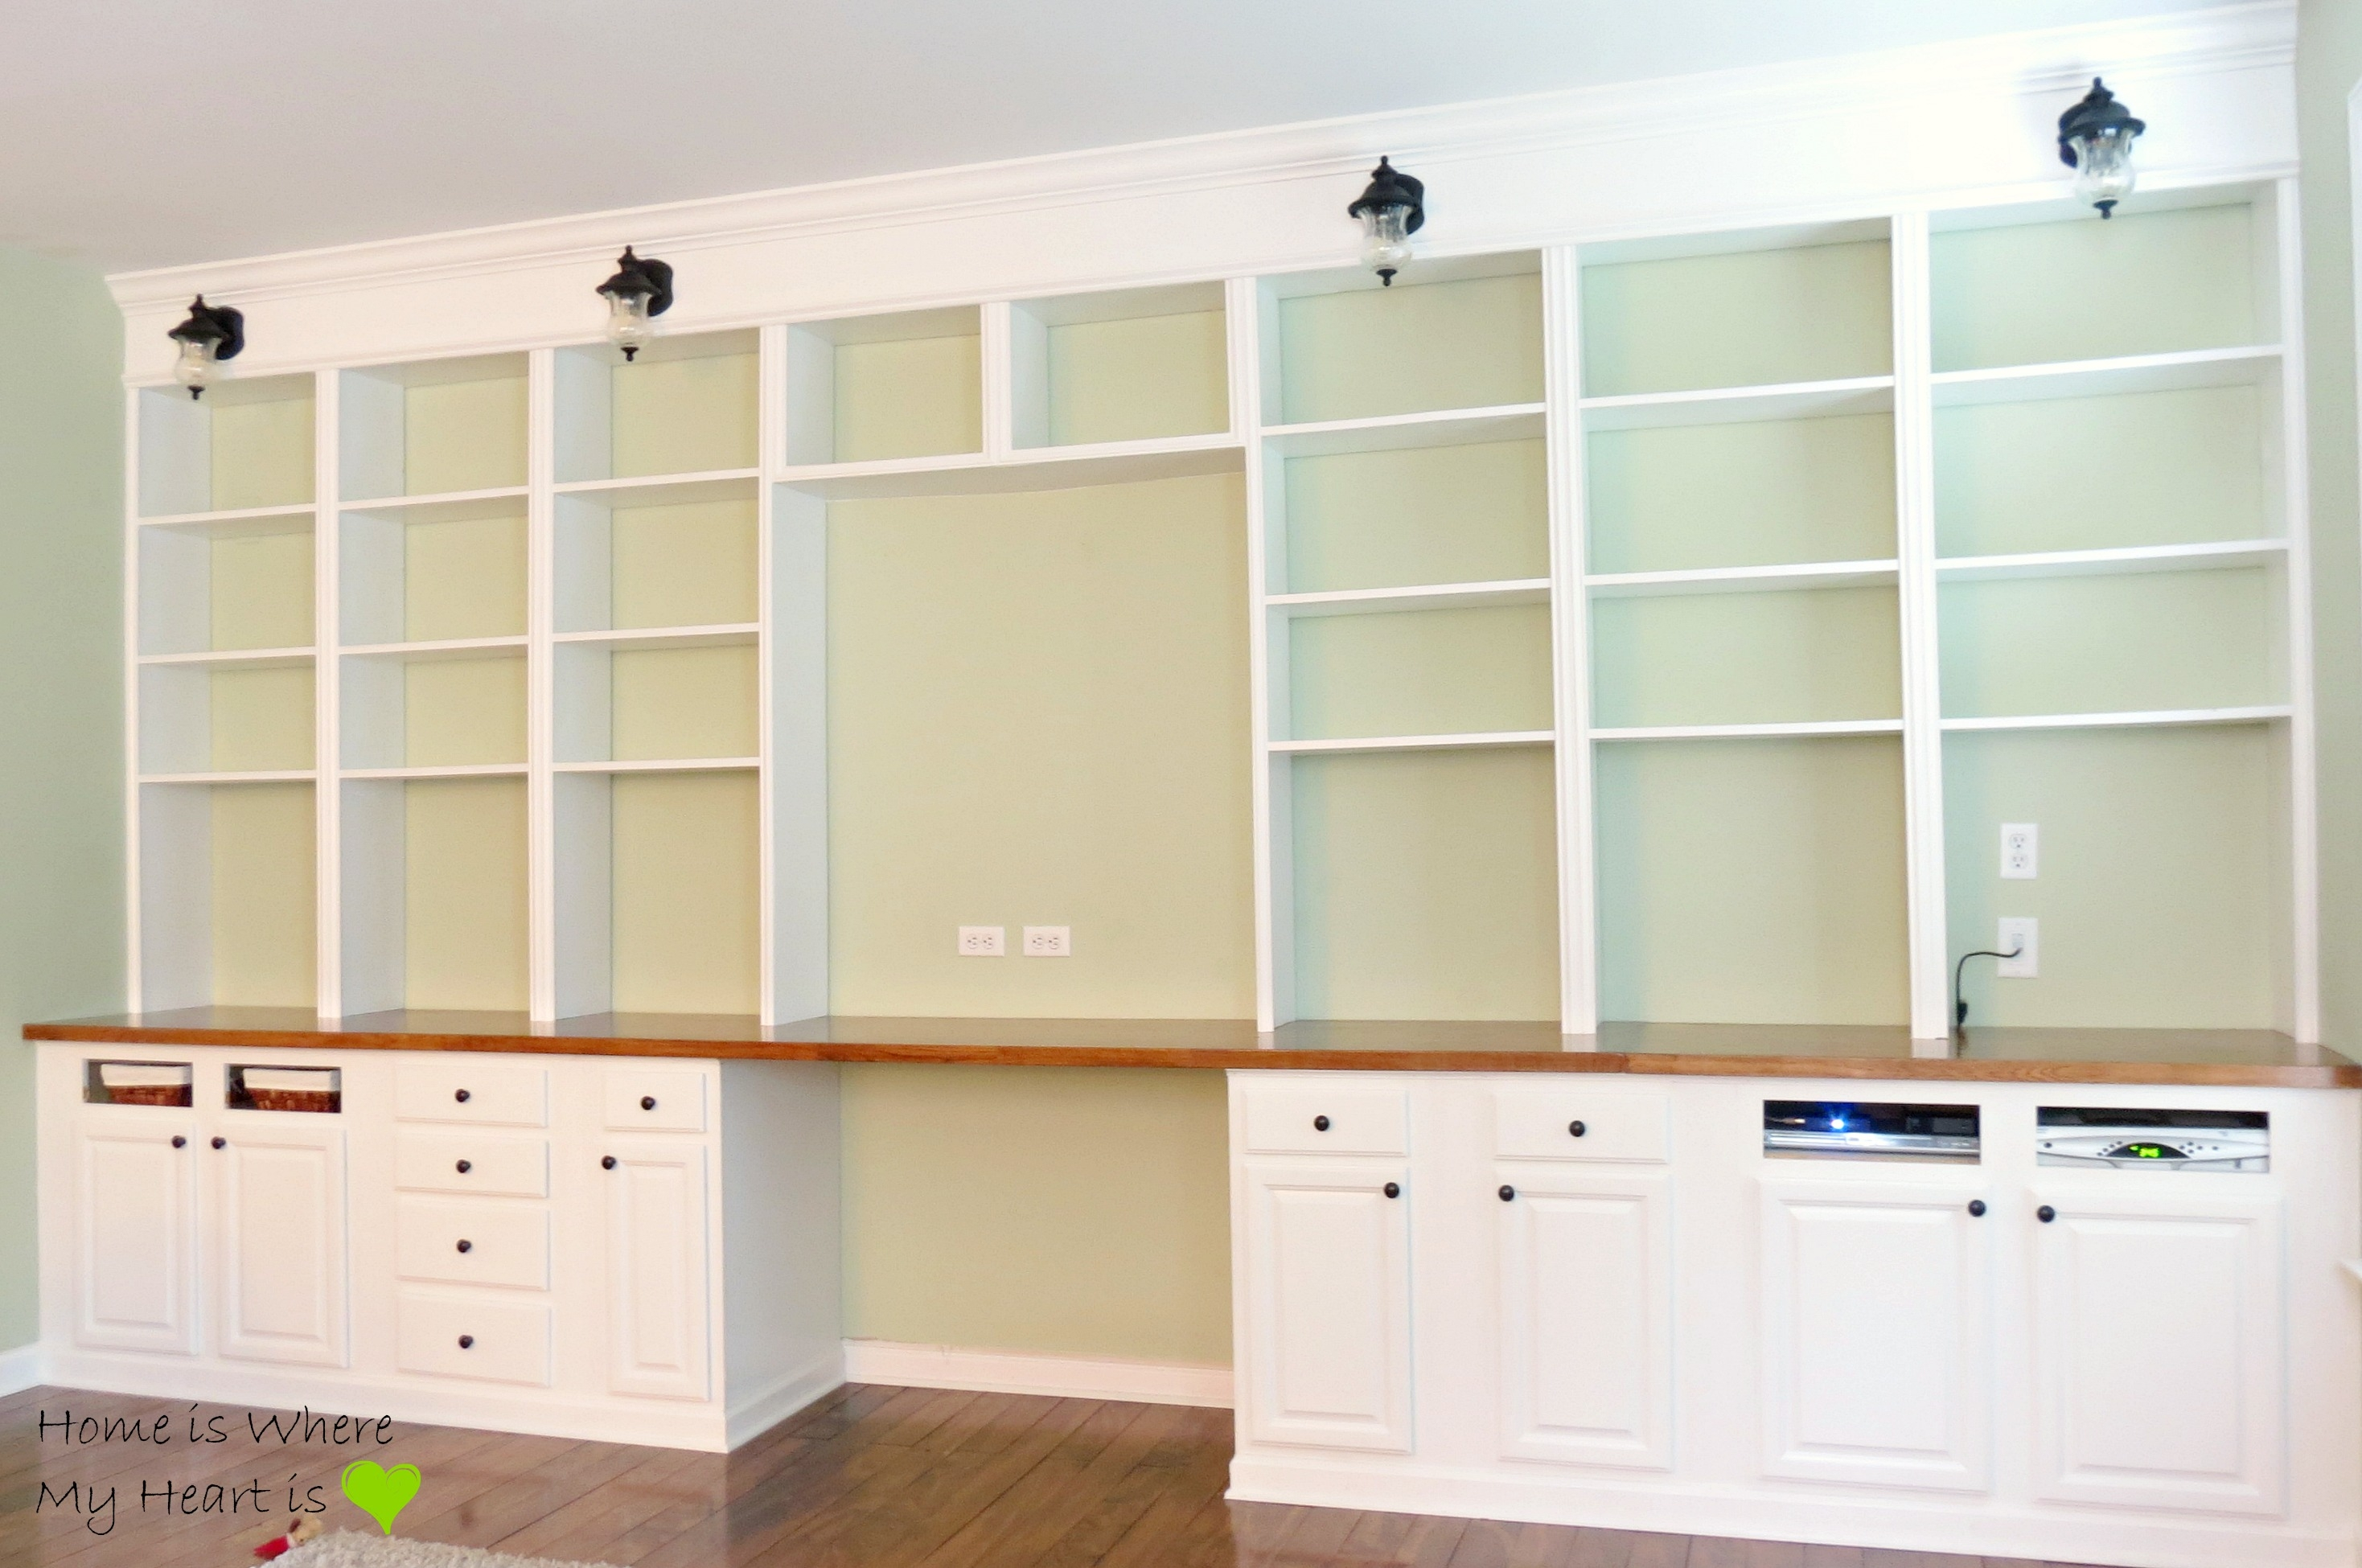 Remodelaholic Build A Wall To Wall Built In Desk And Bookcase Throughout Full Wall Bookcase (View 11 of 15)